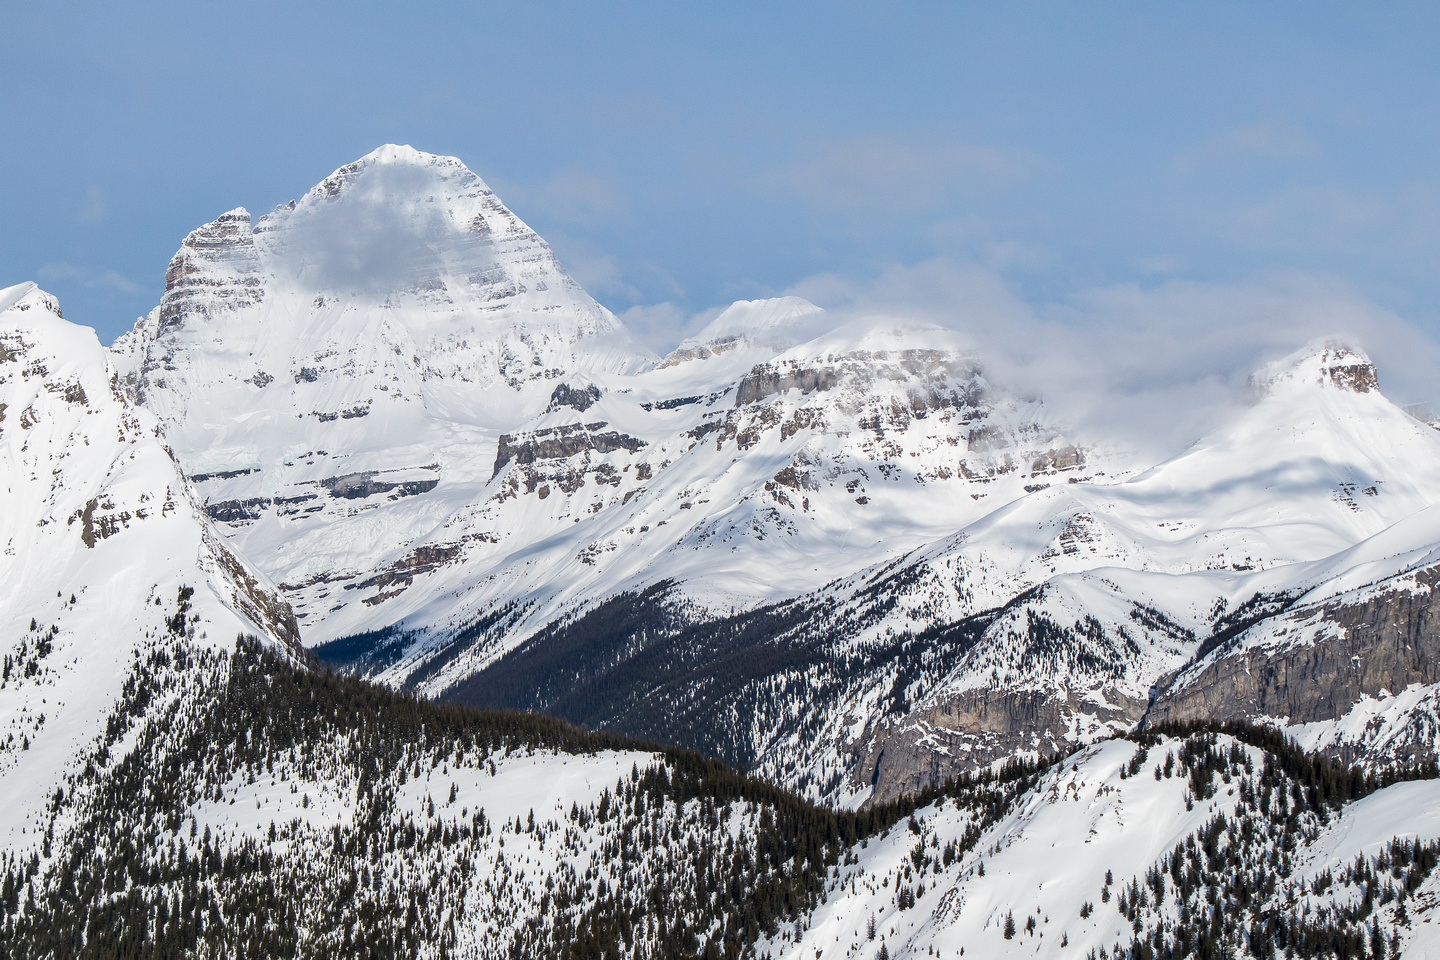 Assiniboine, Magog, Terrapin, The Towers and Wonder Peak.